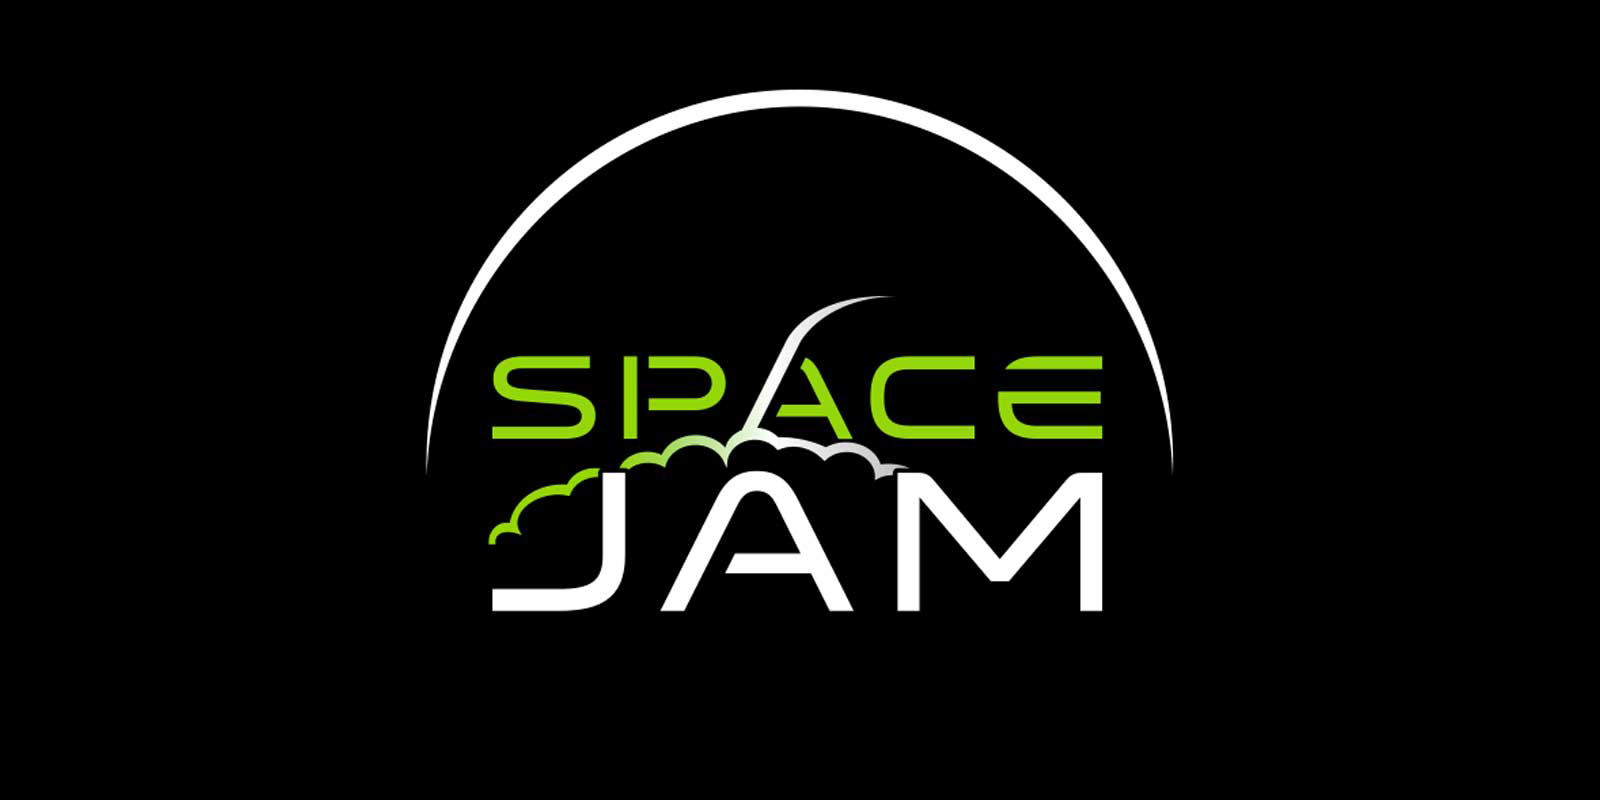 Vape Company Space Jam Expanding Into National C-Store Chains